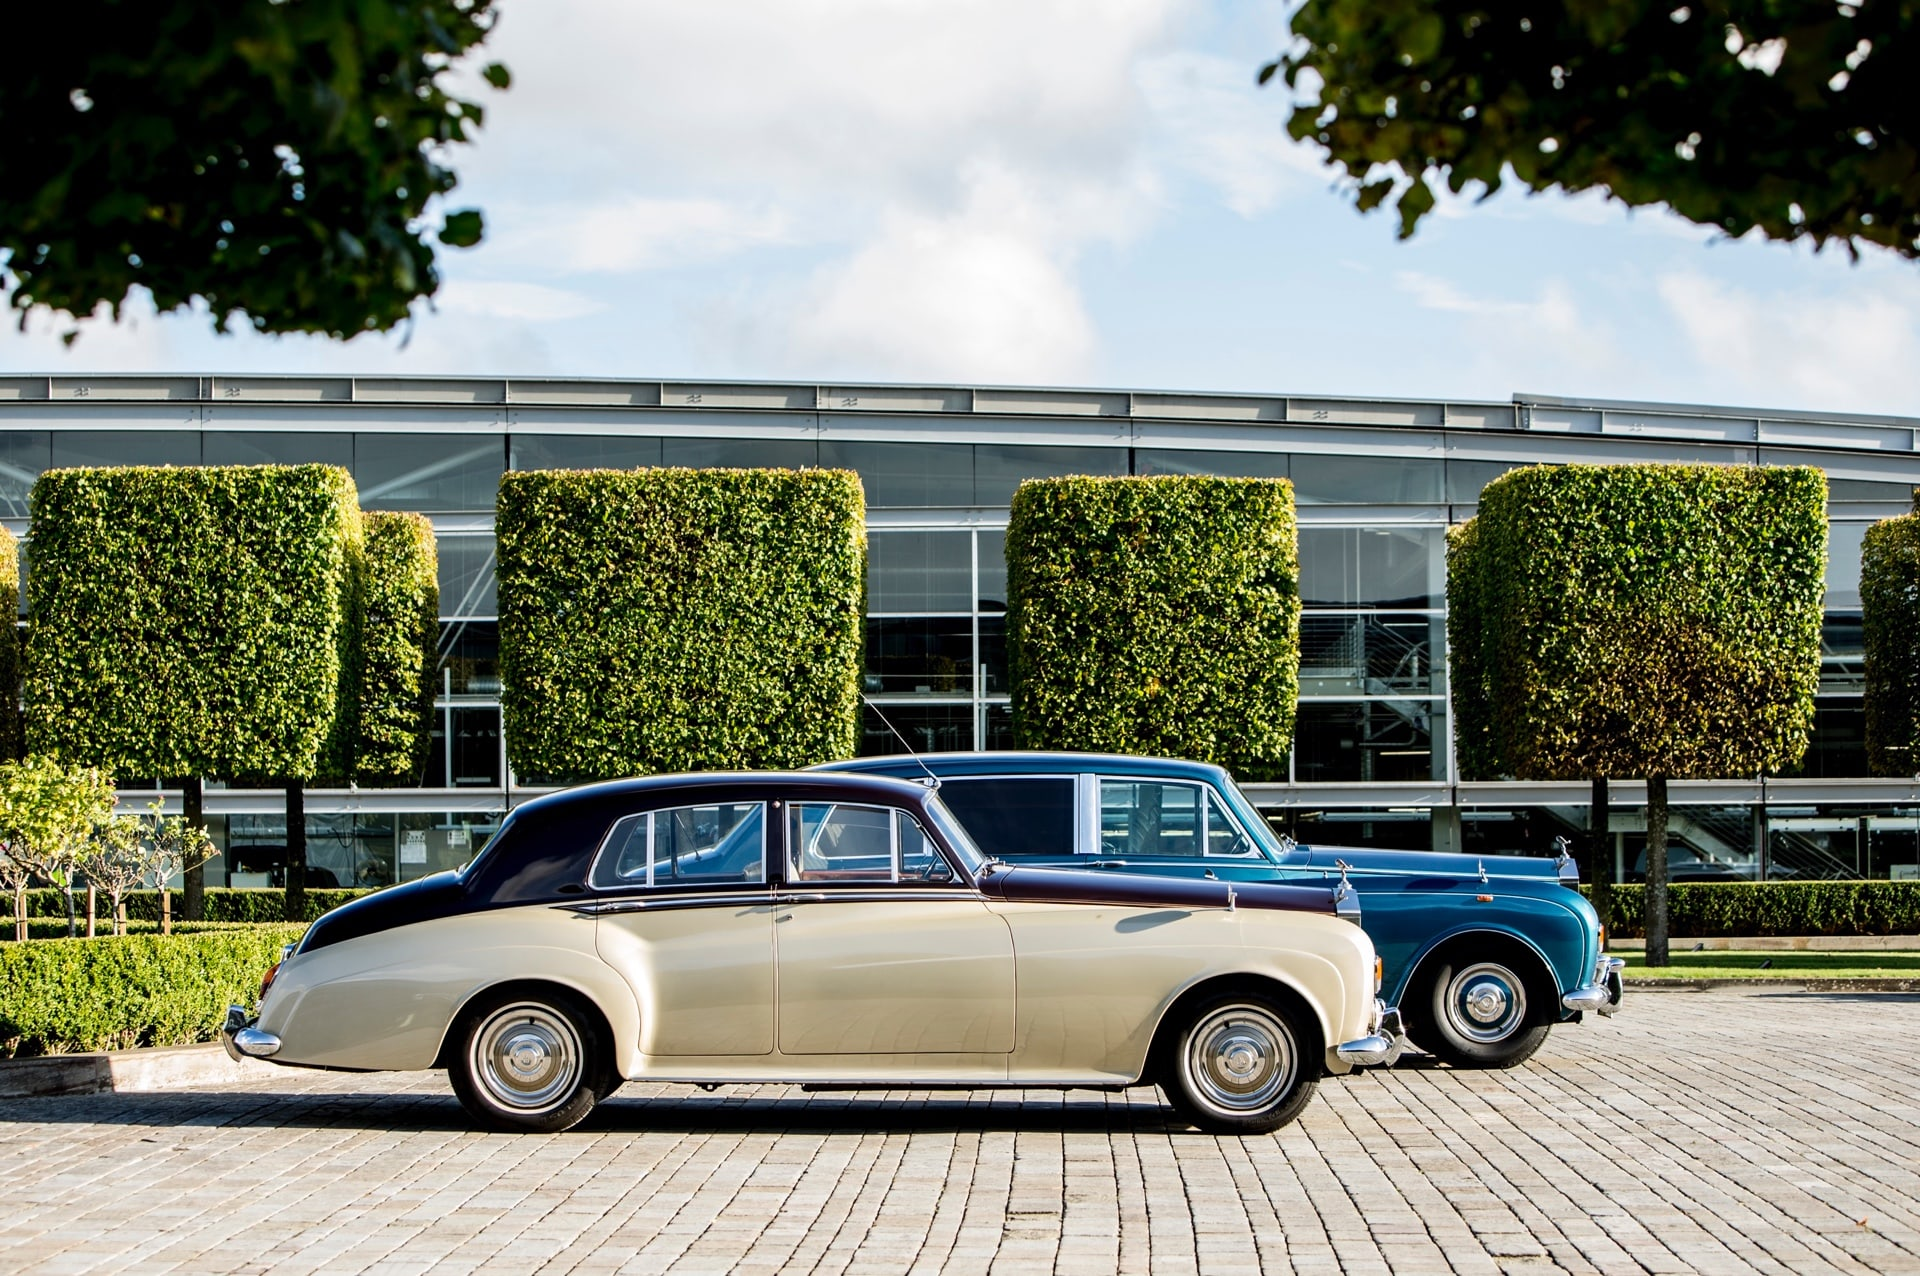 Rolls-Royce cars from the bygone eras at the Rolls-Royce Goodwood Revival experience.